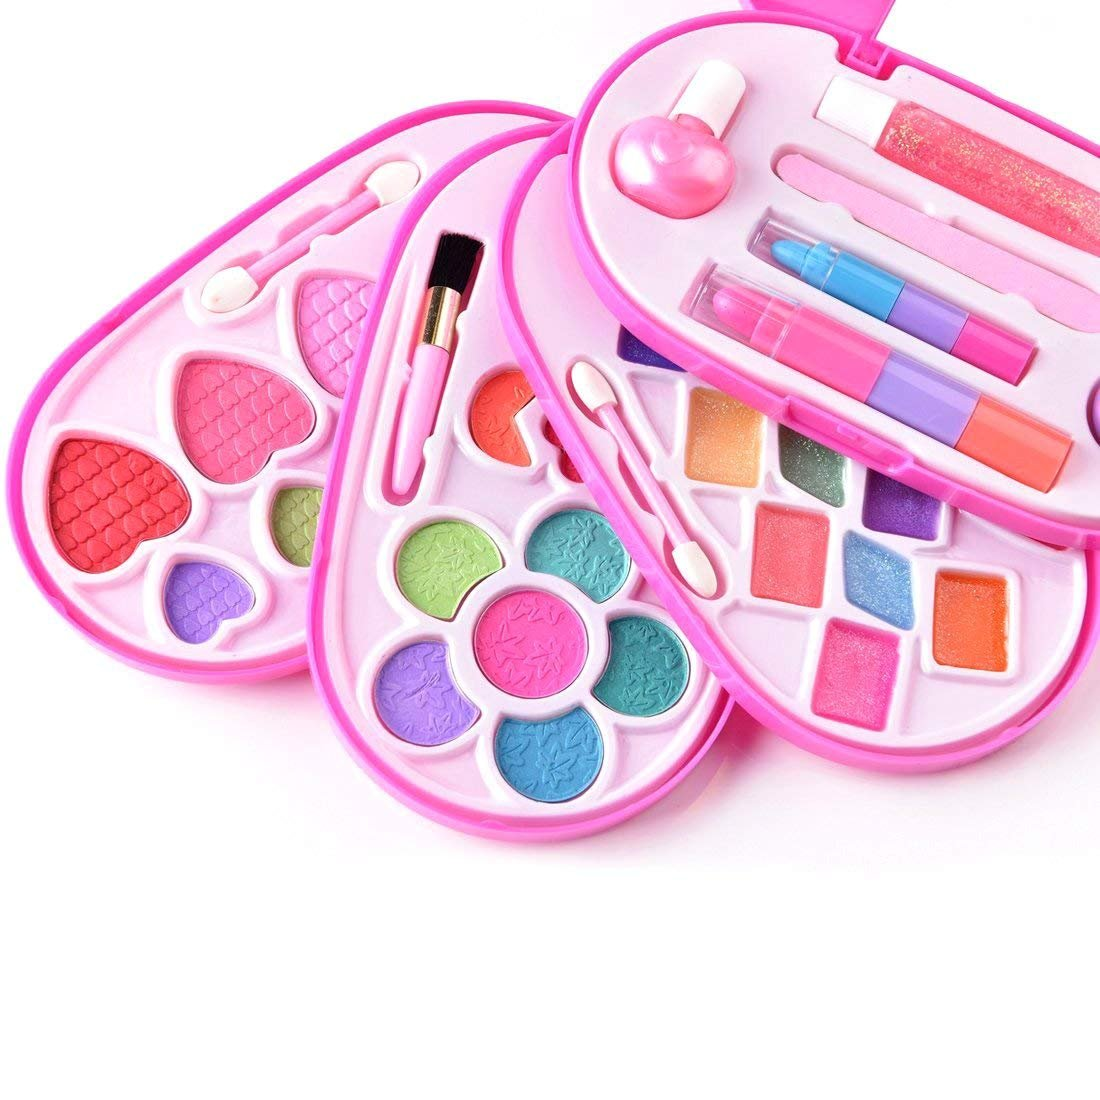 BonnieSun Kids Makeup Kits Girls Washable Cosmetics Dress-up Toys Safety Tested Vanity Deluxe Beauty Palette Set Mirror by BonnieSun (Image #4)